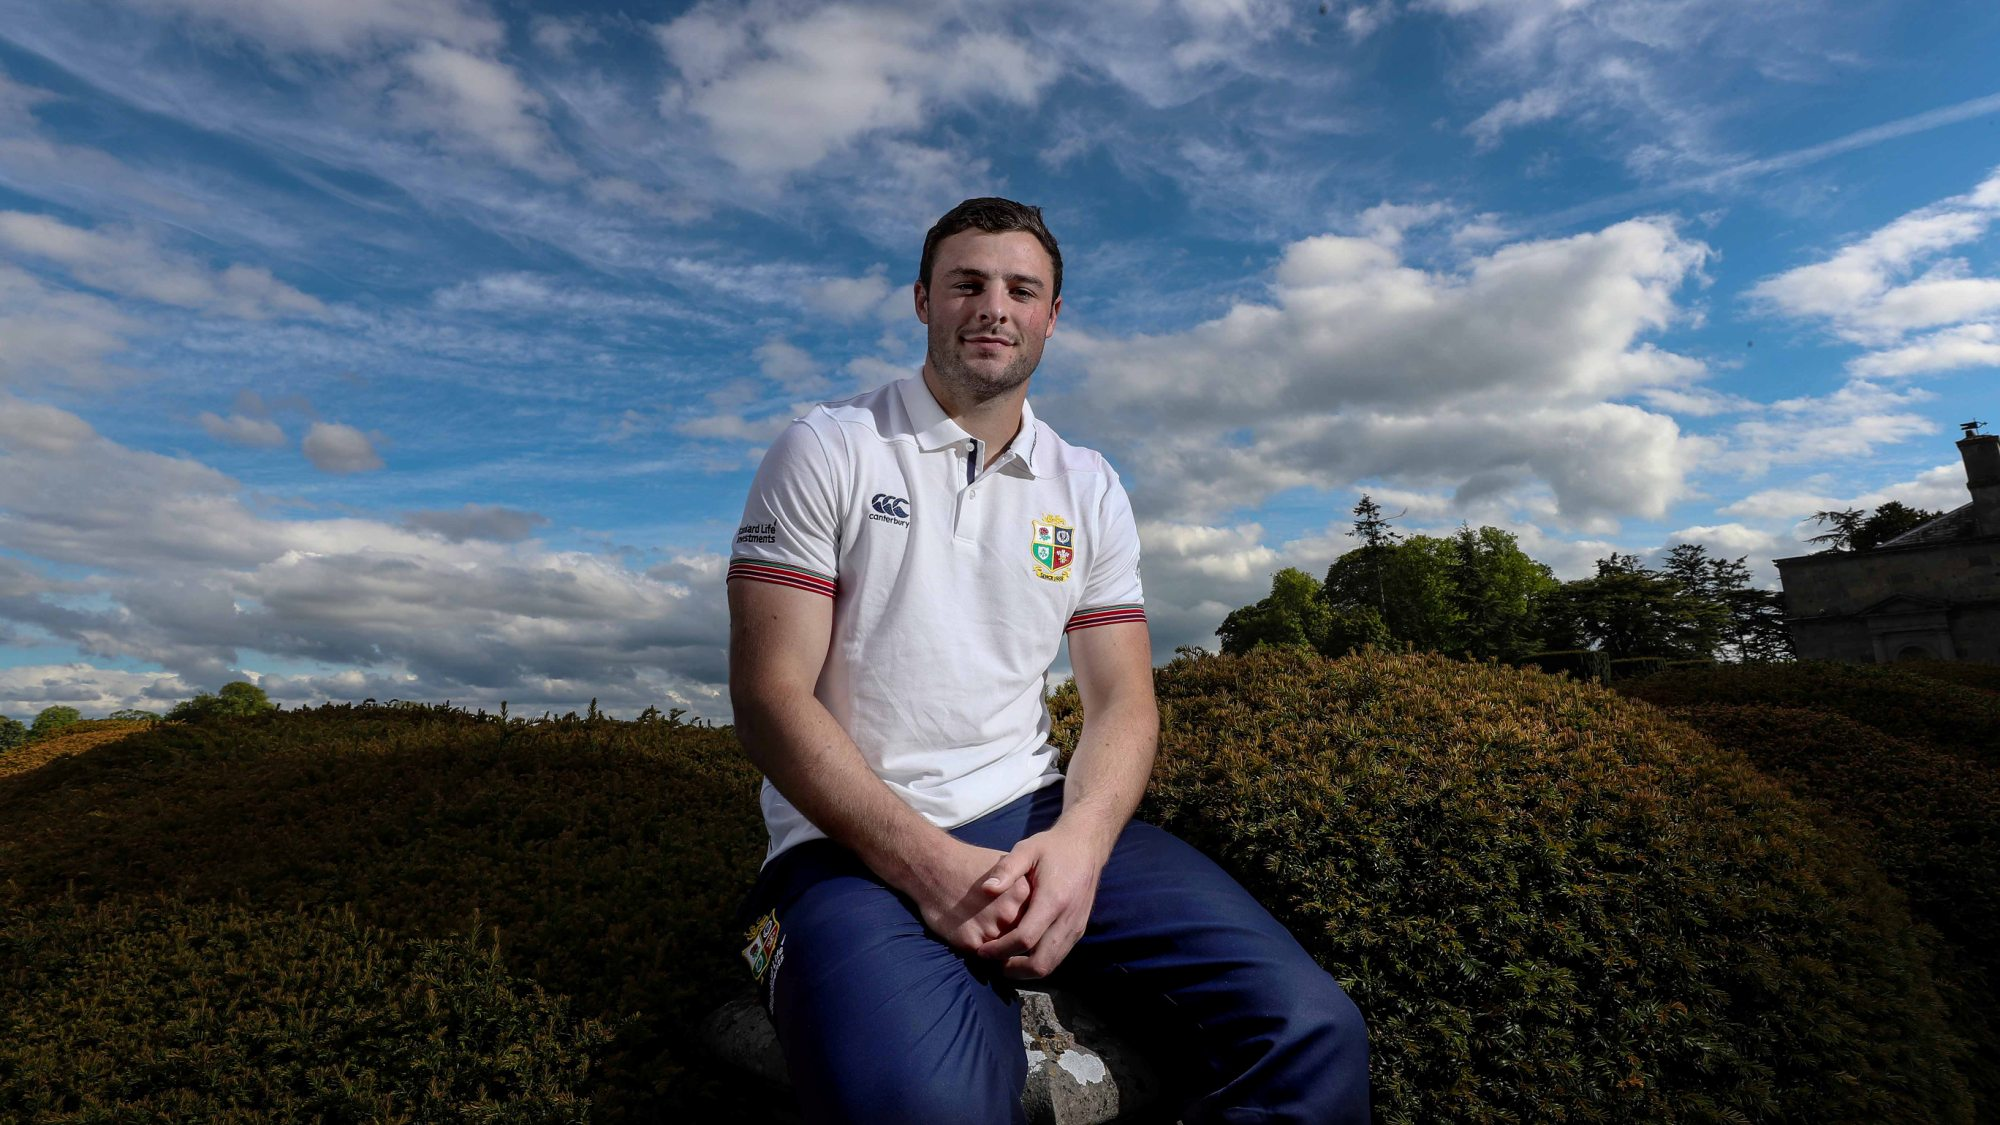 Robbie Henshaw dishes on life on Tour with the Lions